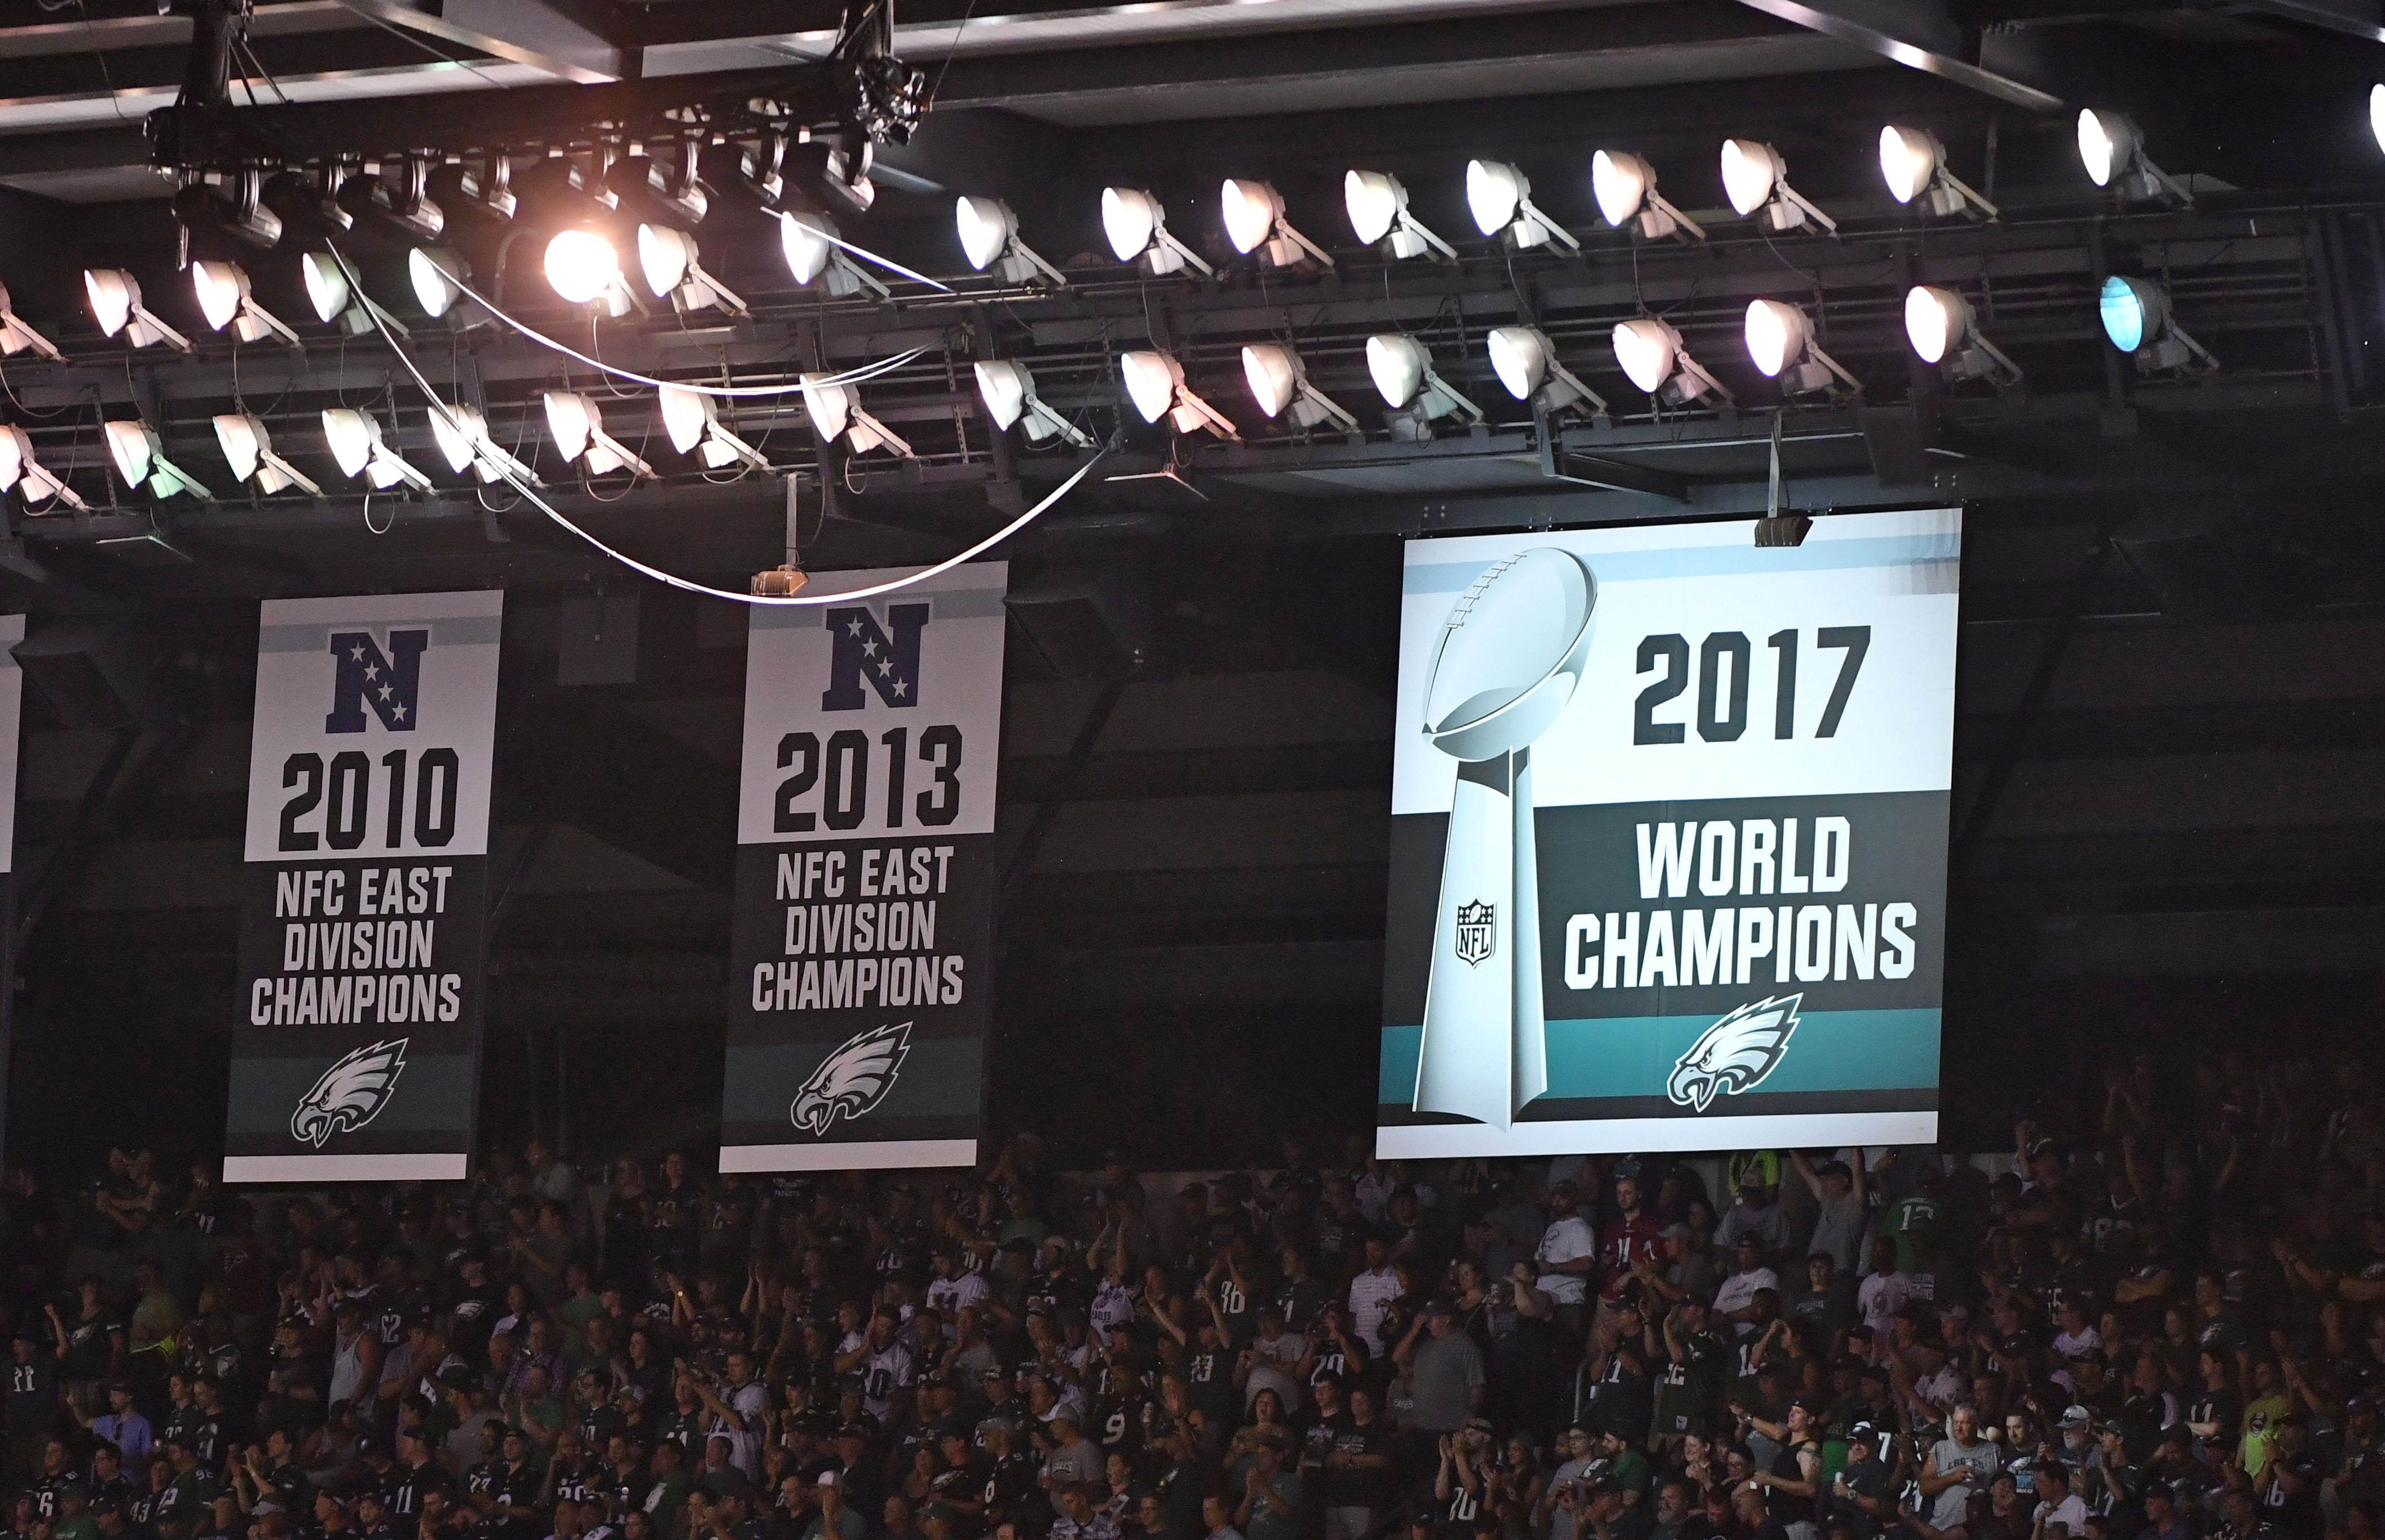 The Philadelphia Eagles unveil their Super Bowl LII champions banner before the 2018 season opener against the Atlanta Falcons at Lincoln Financial Field. - Packers QB Carted Off In Clash With Bears